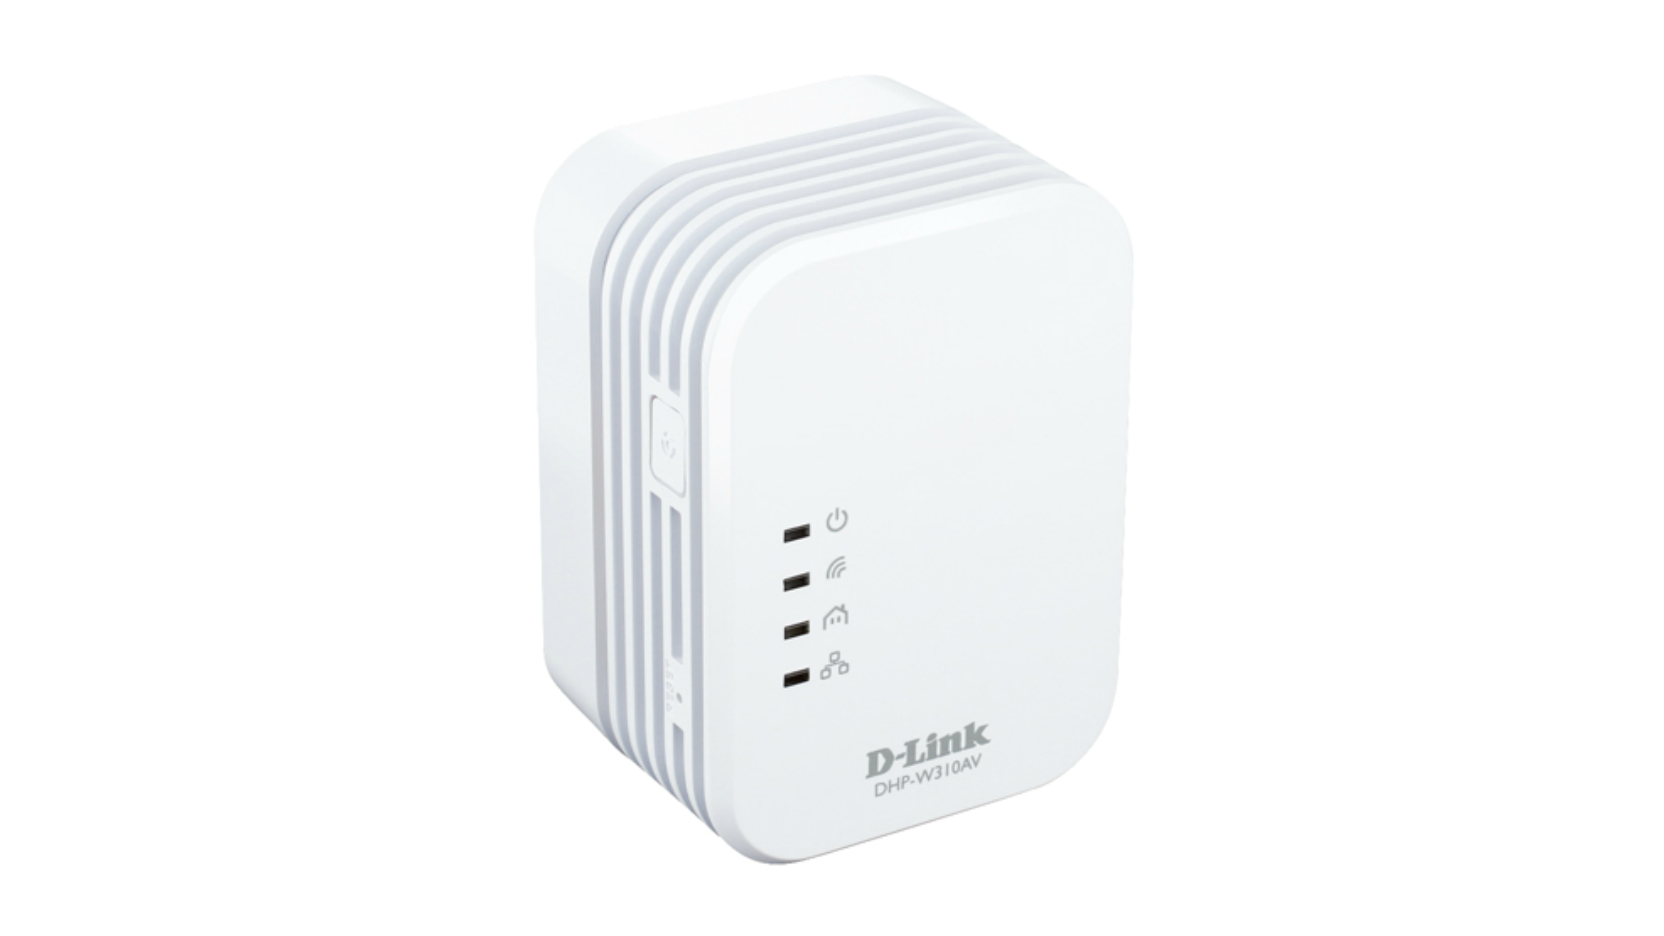 D-Link DHP-W310AV/E 500Mbit/s Ethernet LAN Wi-Fi White 1pc(s) PowerLine network adapter